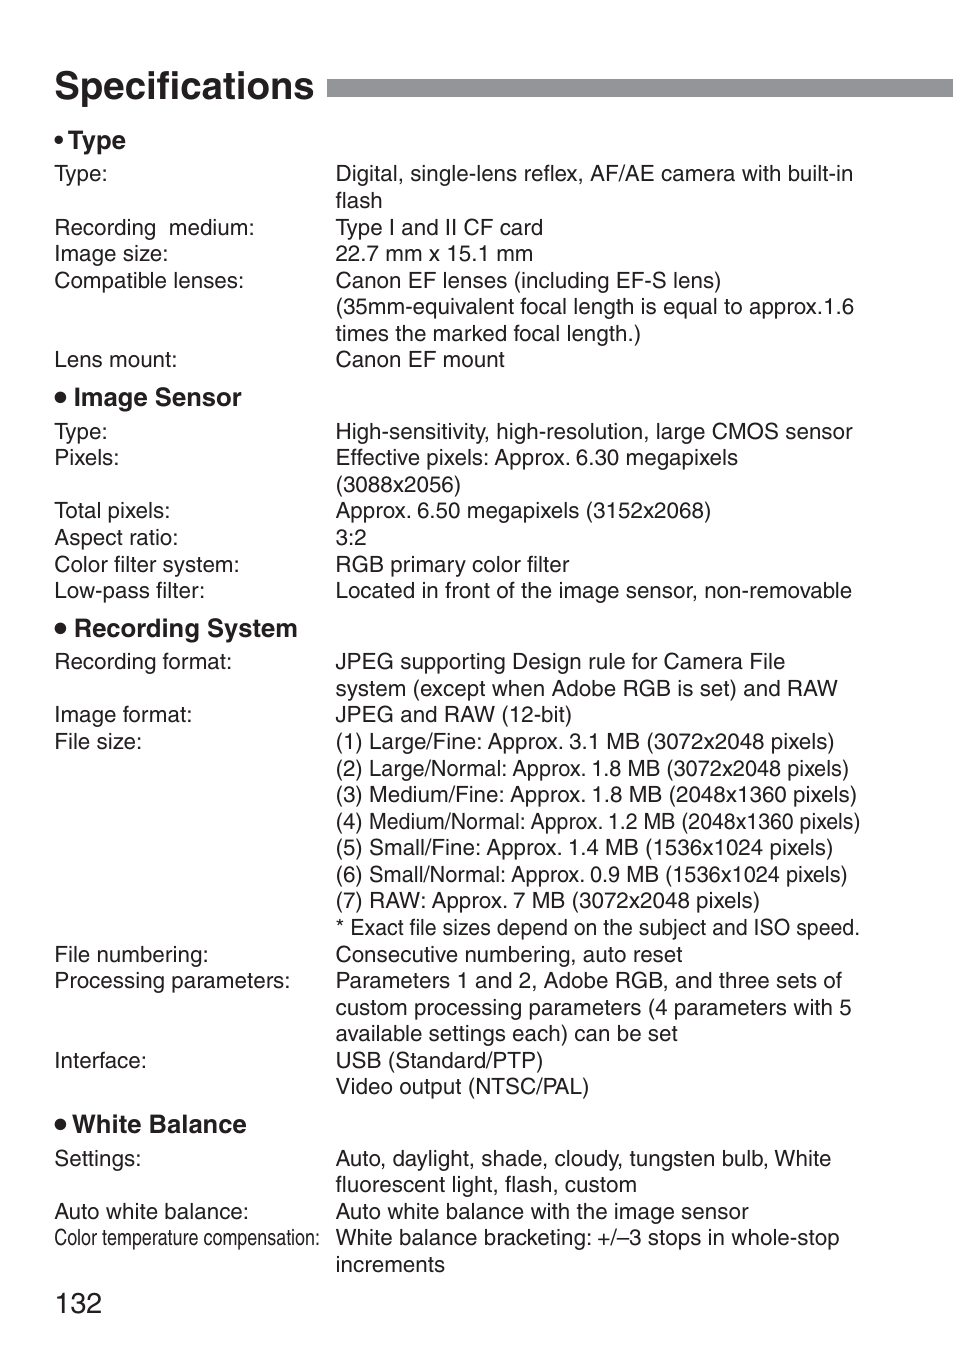 Specifications | Canon ds6041 User Manual | Page 132 / 140 ...